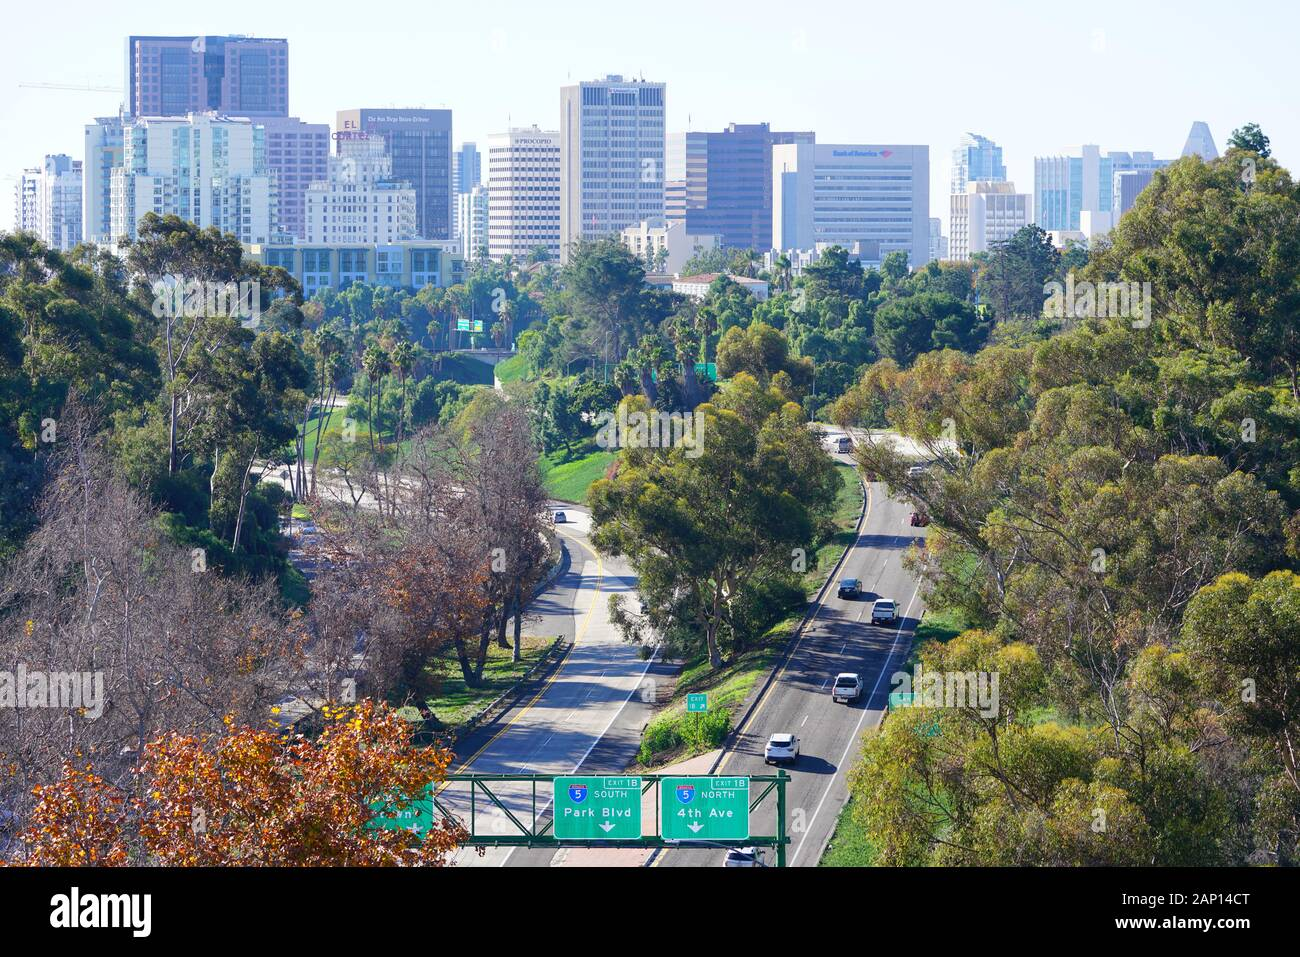 San Diego Ca 5 Jan 2020 View Of The Downtown San Diego Skyline Cityscape Seen From Balboa Park A Landmark Urban Park In San Diego California Stock Photo Alamy